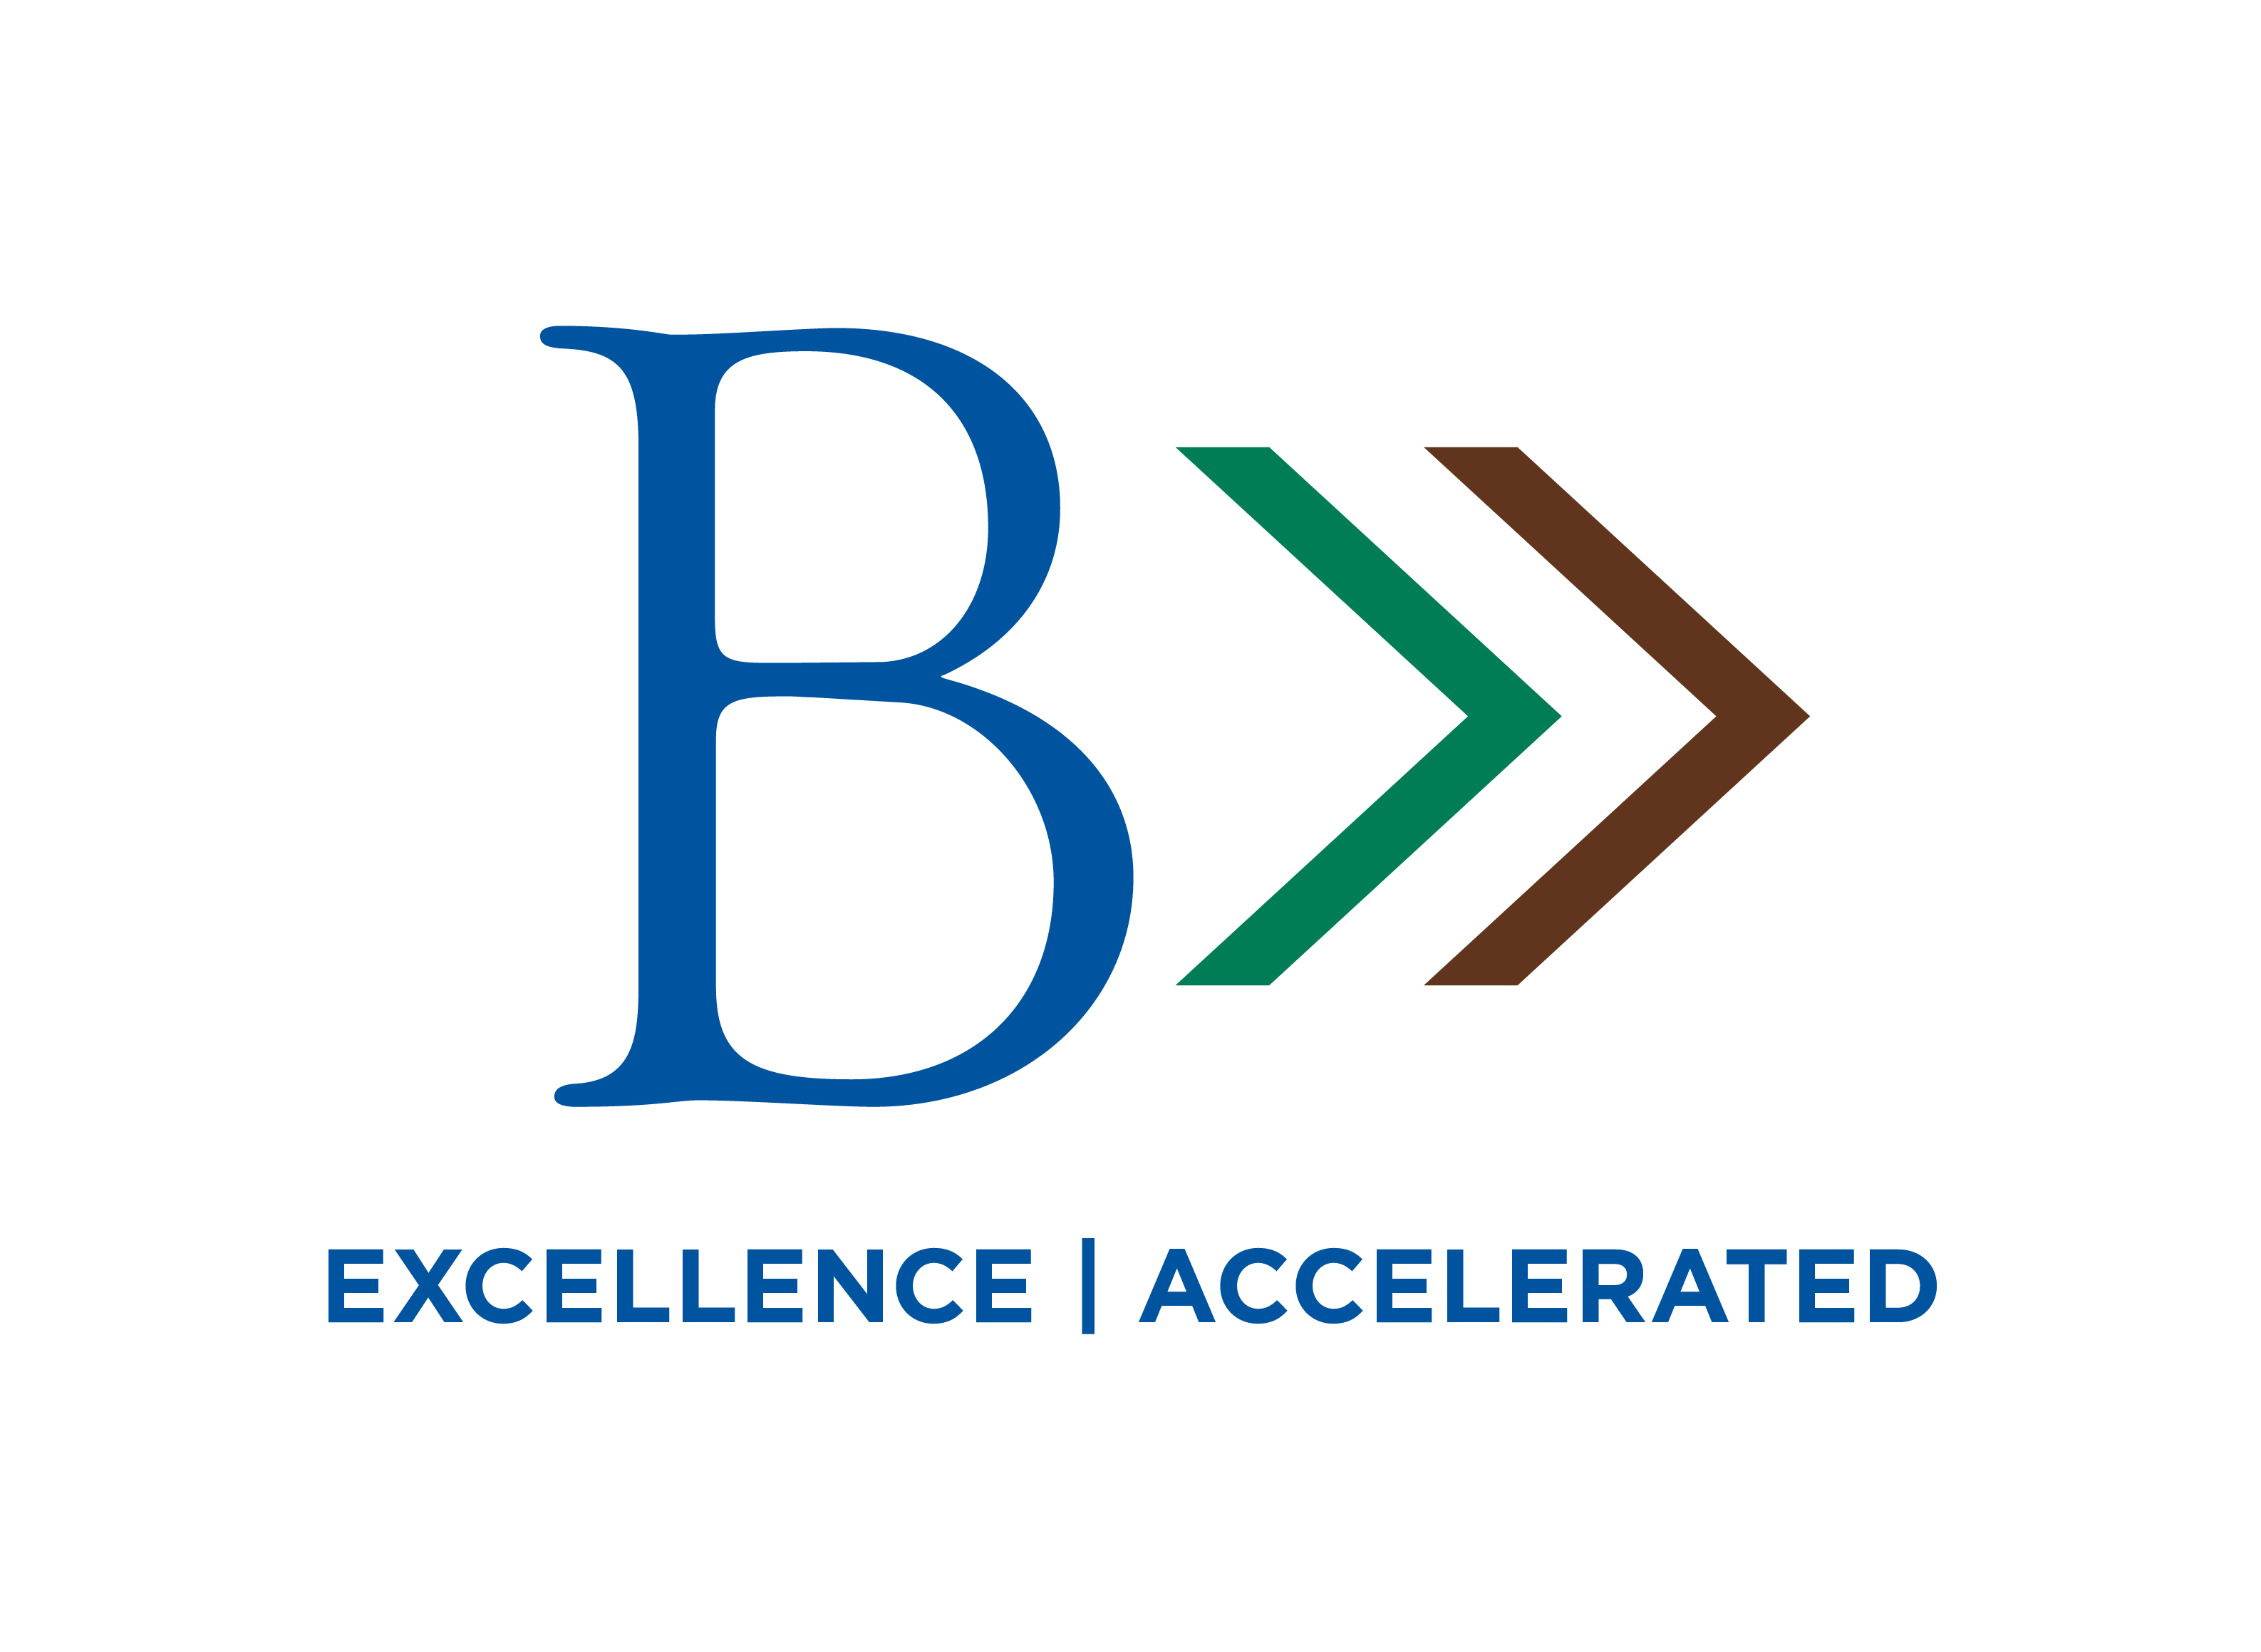 Excellence Accelerated